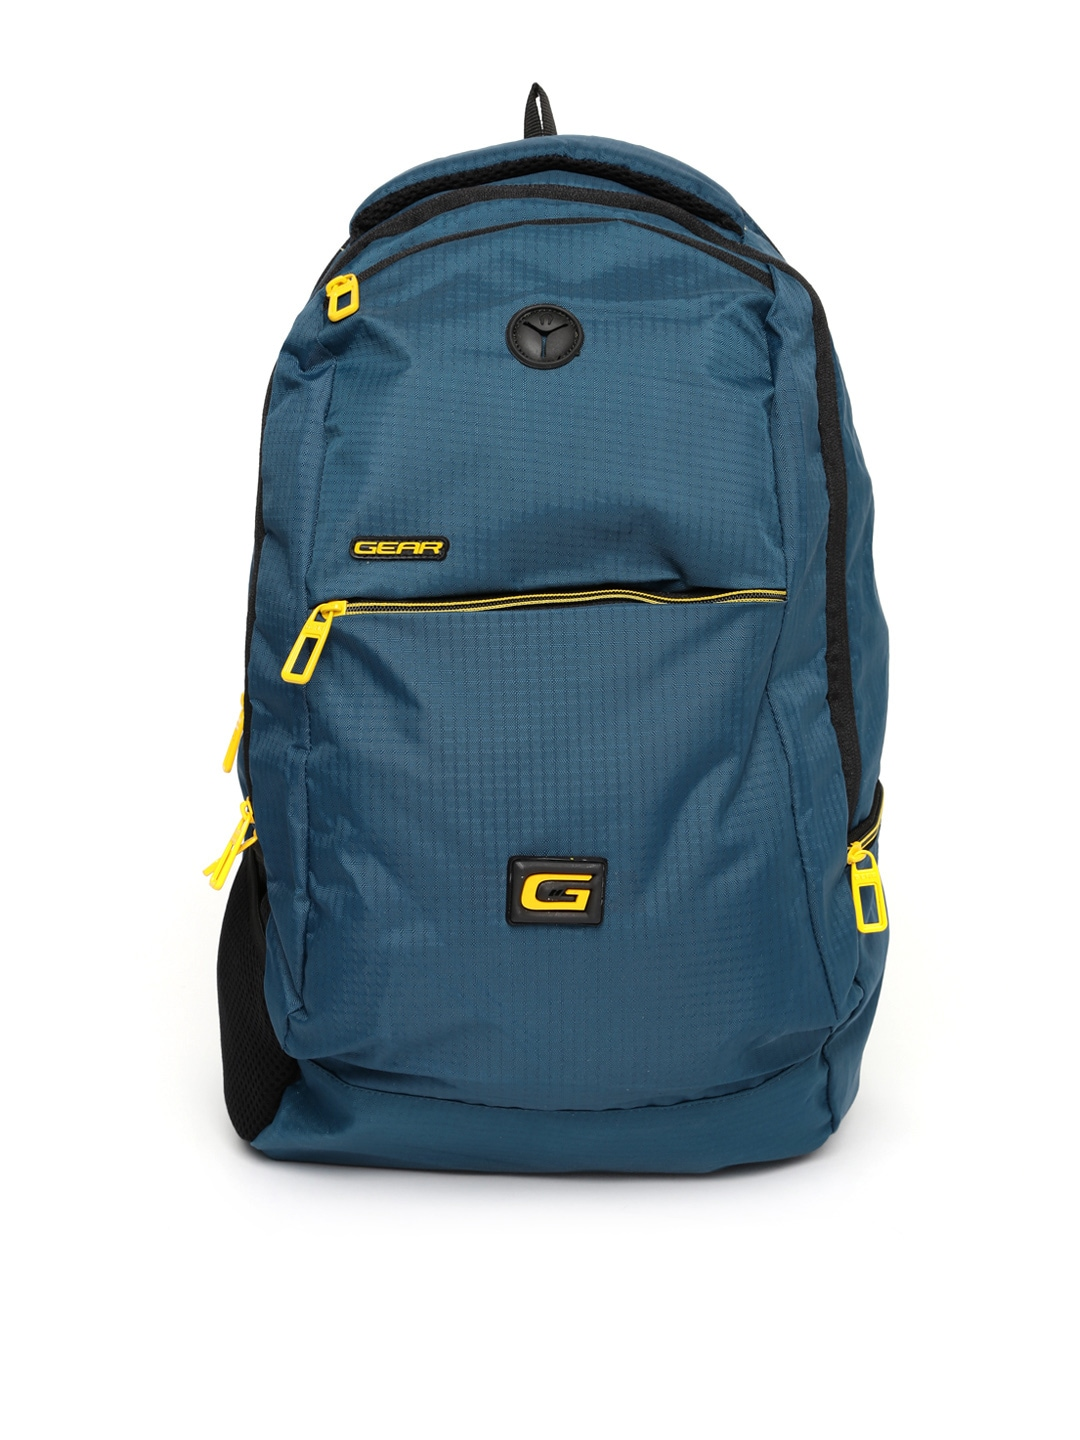 Gear Backpacks - Buy Gear Bags and Backpacks Online in India 36aab4e39a83e